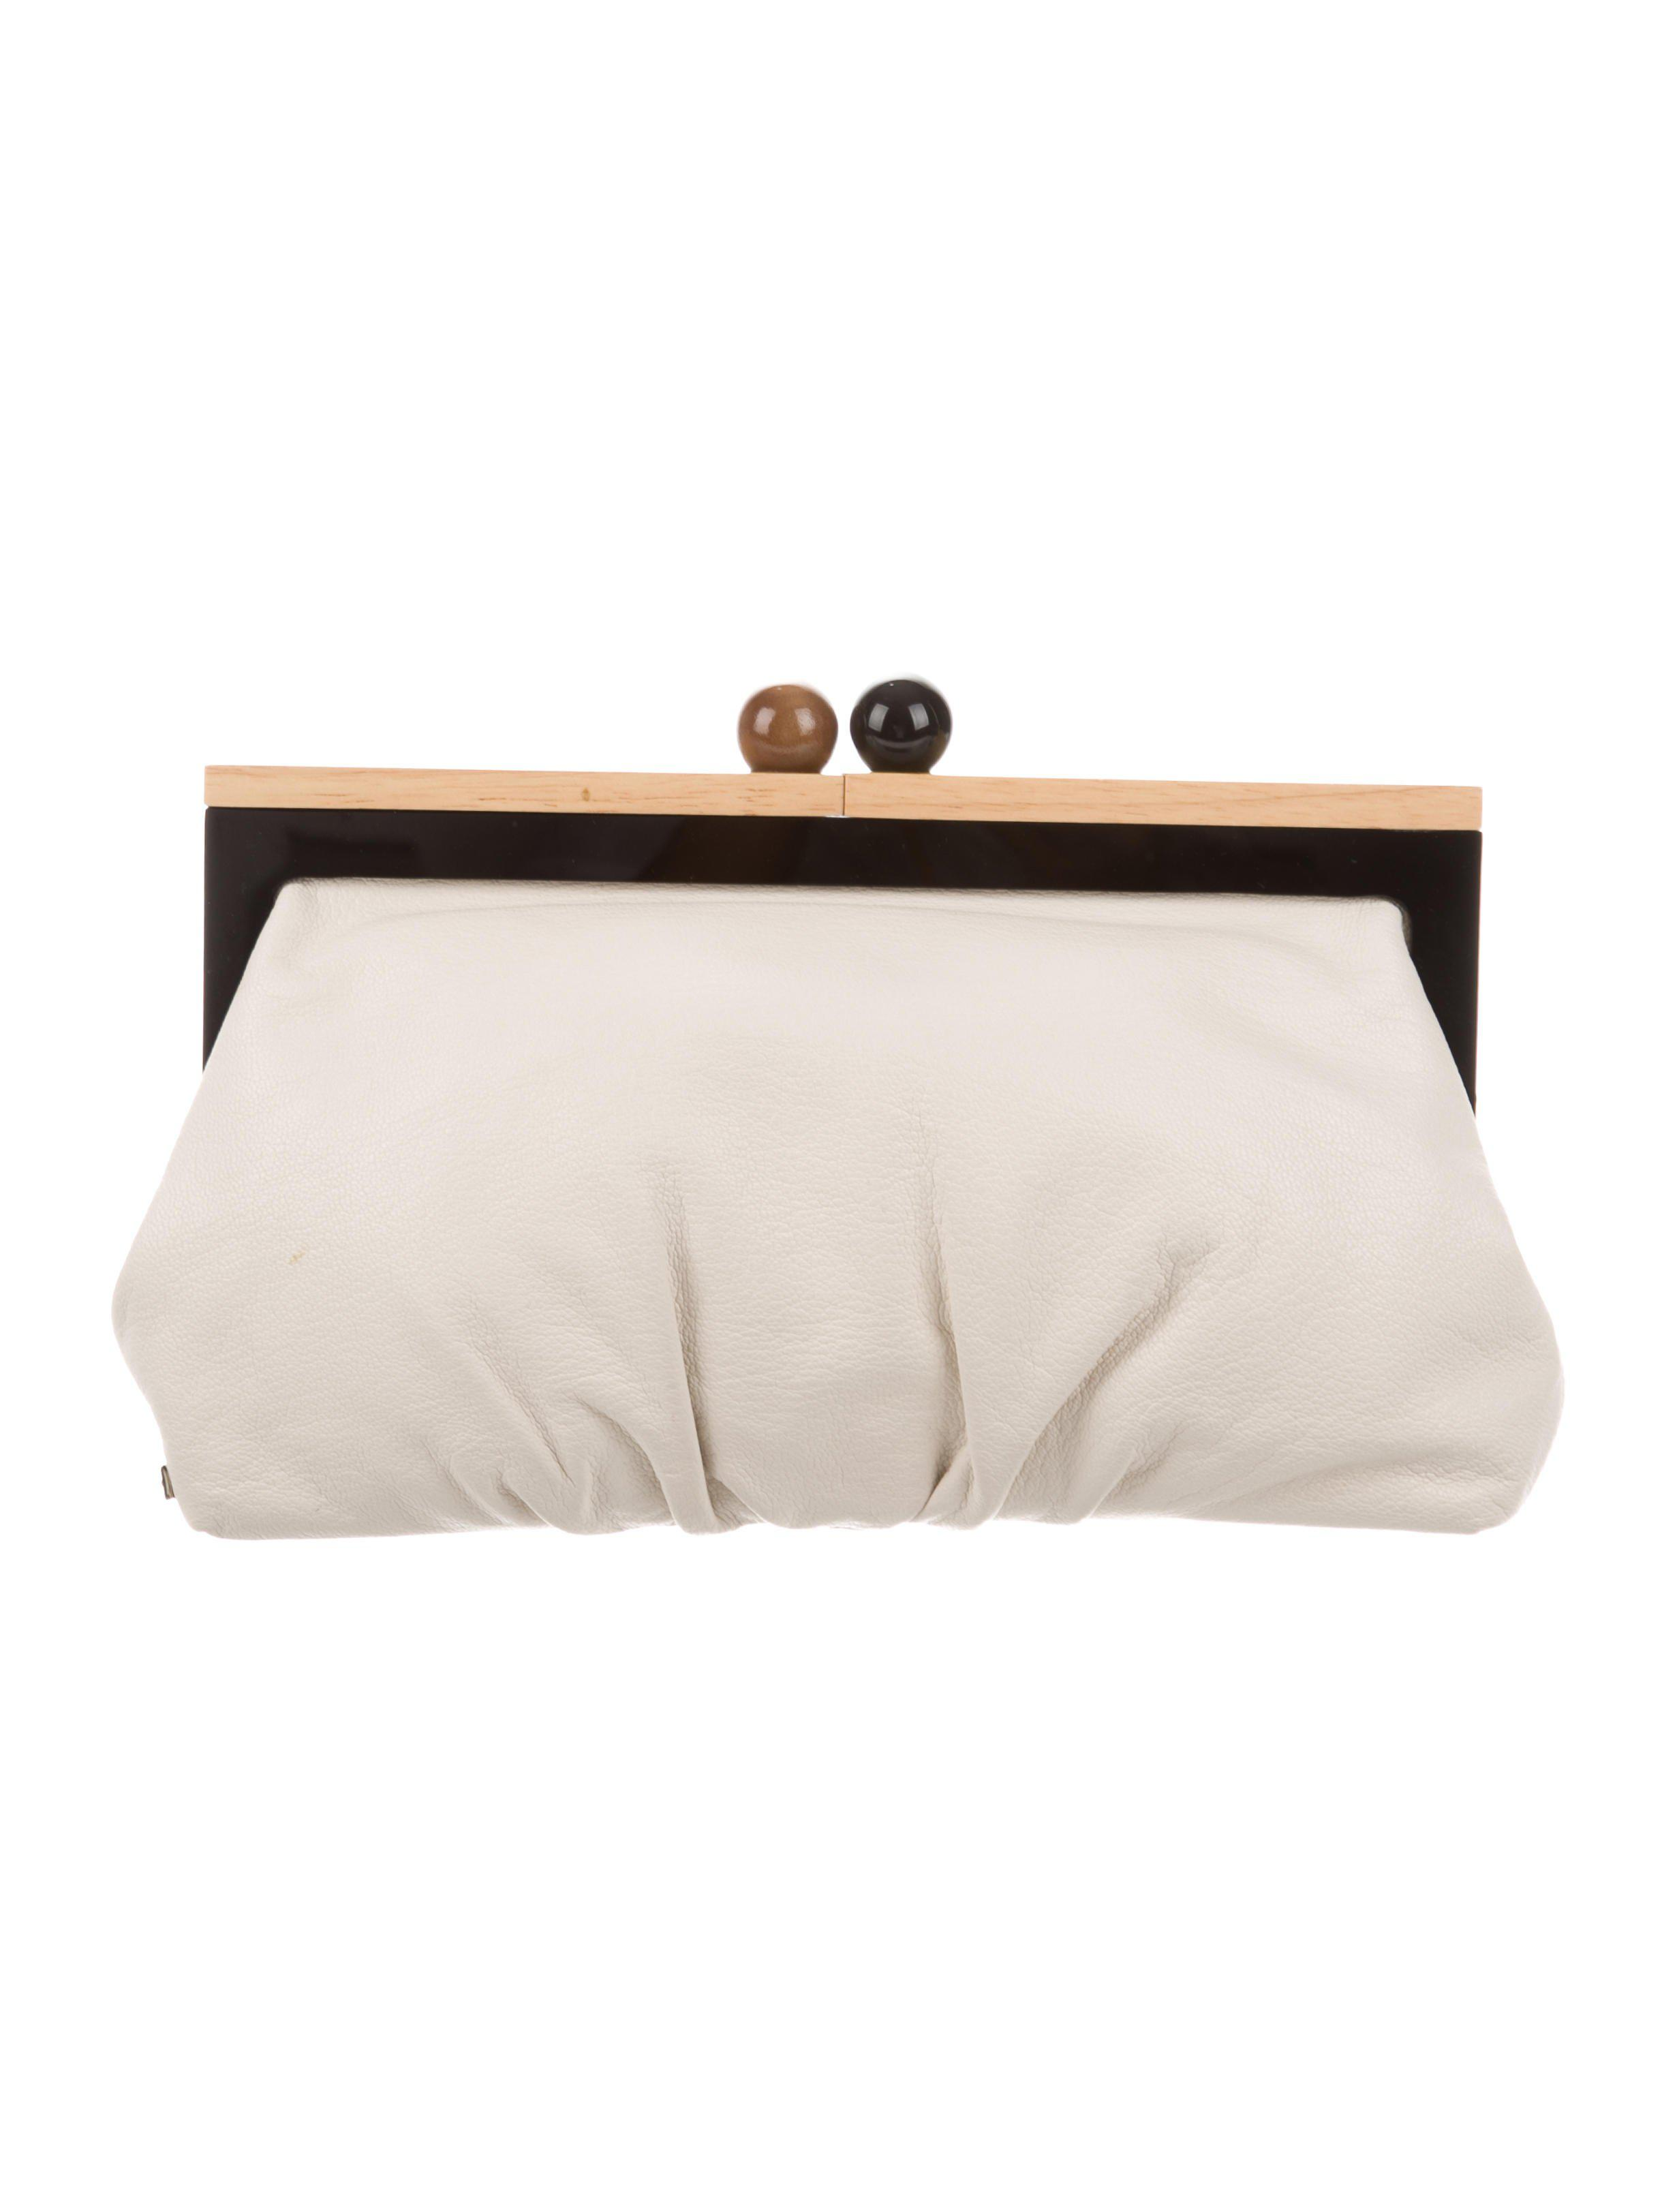 Lyst - Kate Spade Leather Frame Clutch White in Metallic